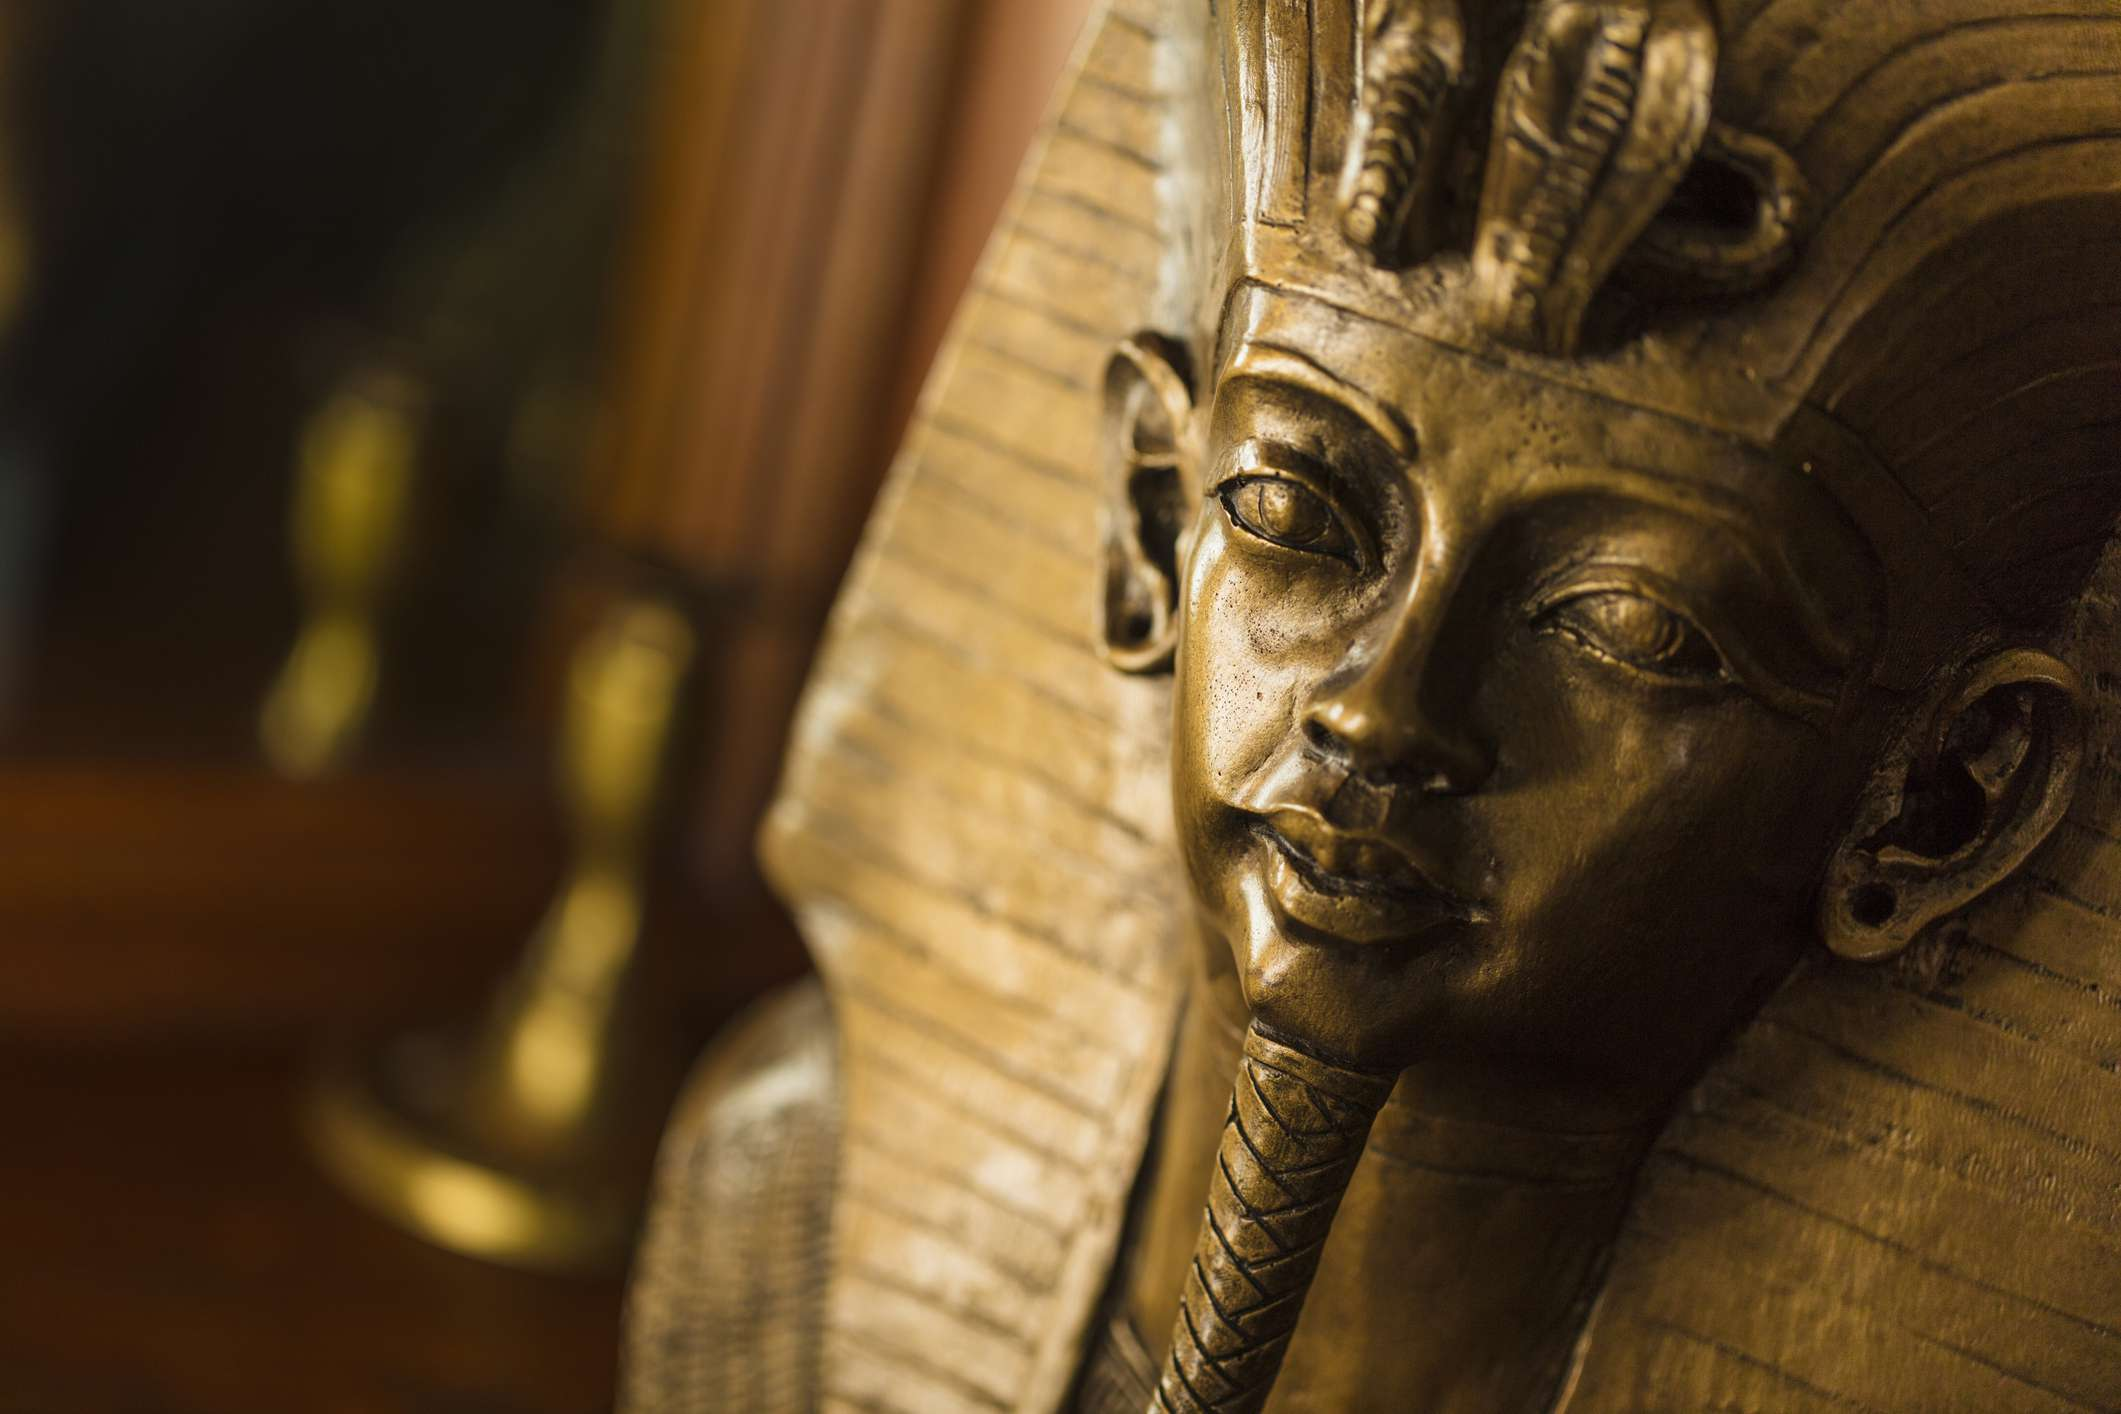 Bronze color bust of Egyptian King Tutankhamun made with plaster